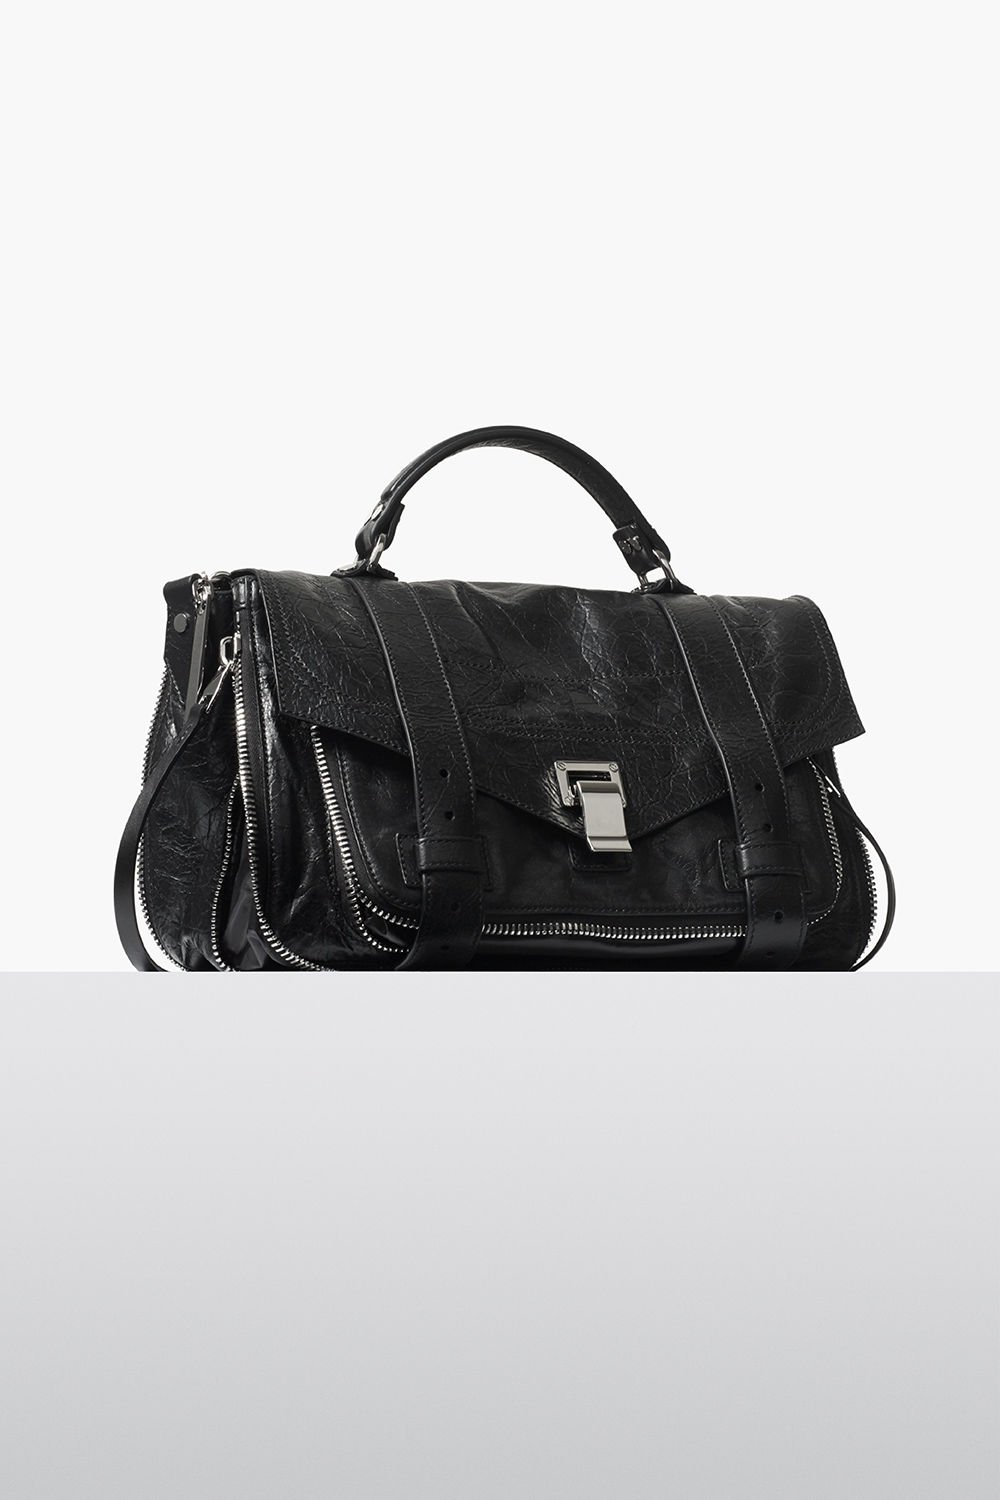 proenza schouler fall 2017 black paper leather zip ps1+ medium bag